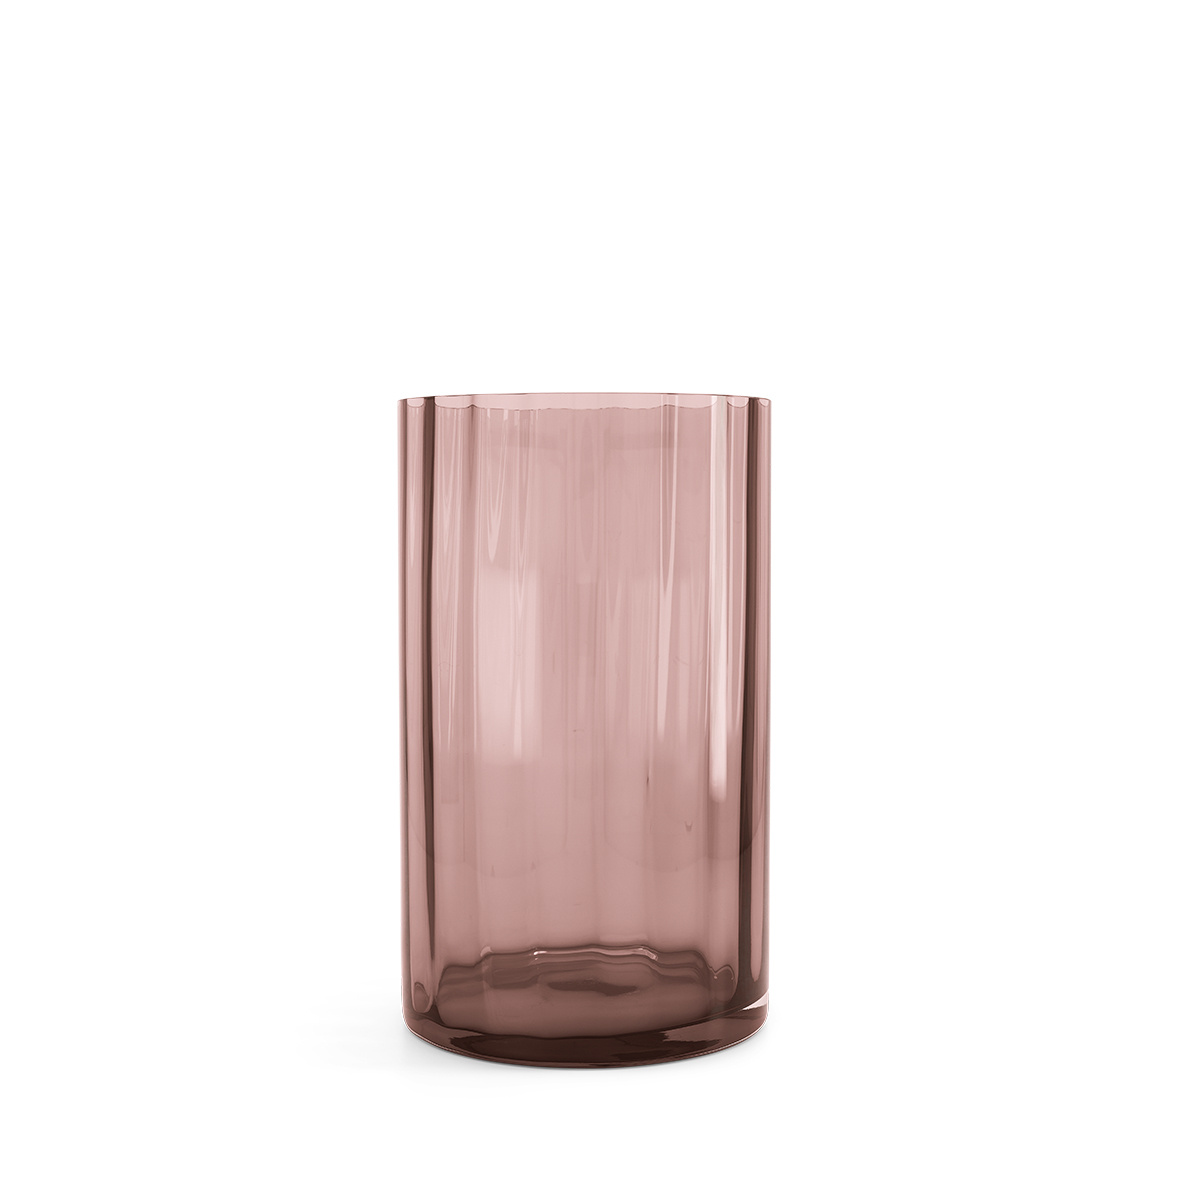 Chiara antique pink vase